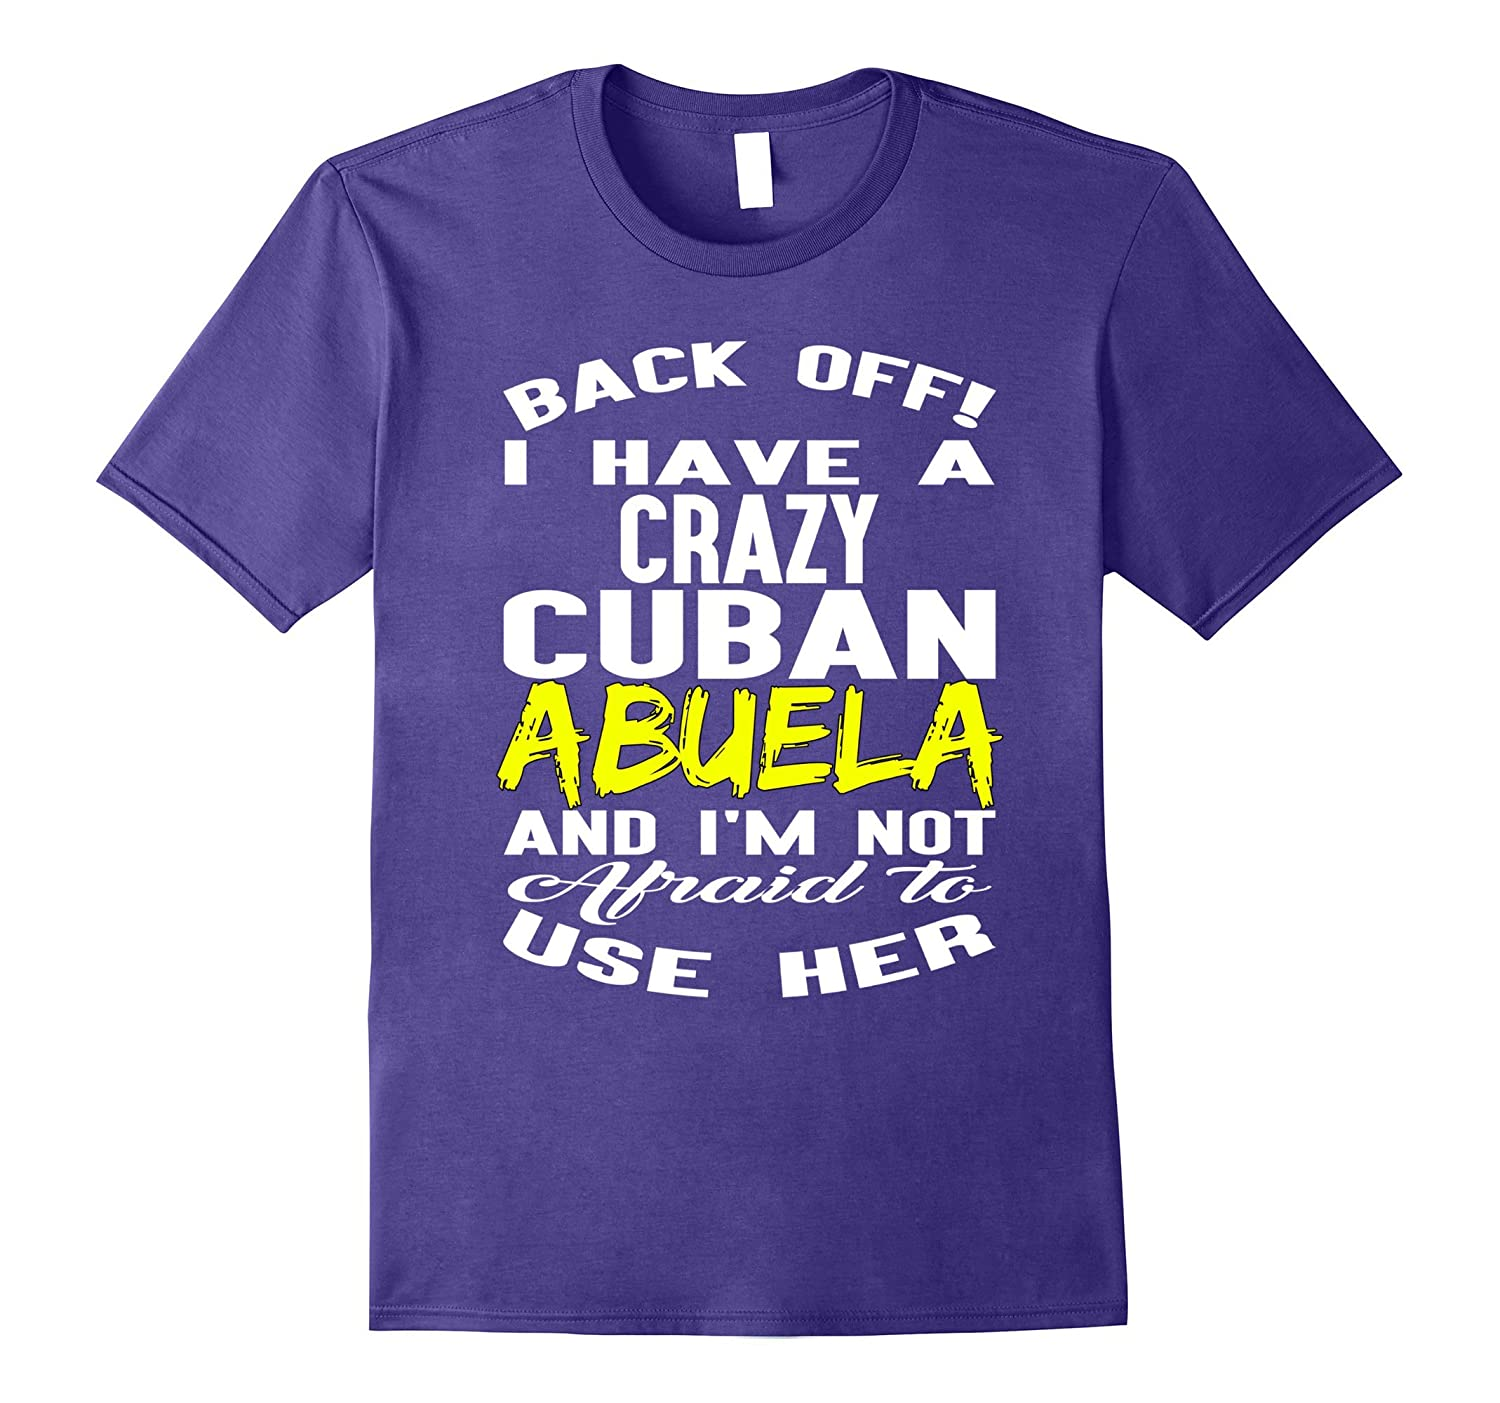 Back off I have crazy Cuban Abuela I'm not afraid T-shirt-Rose